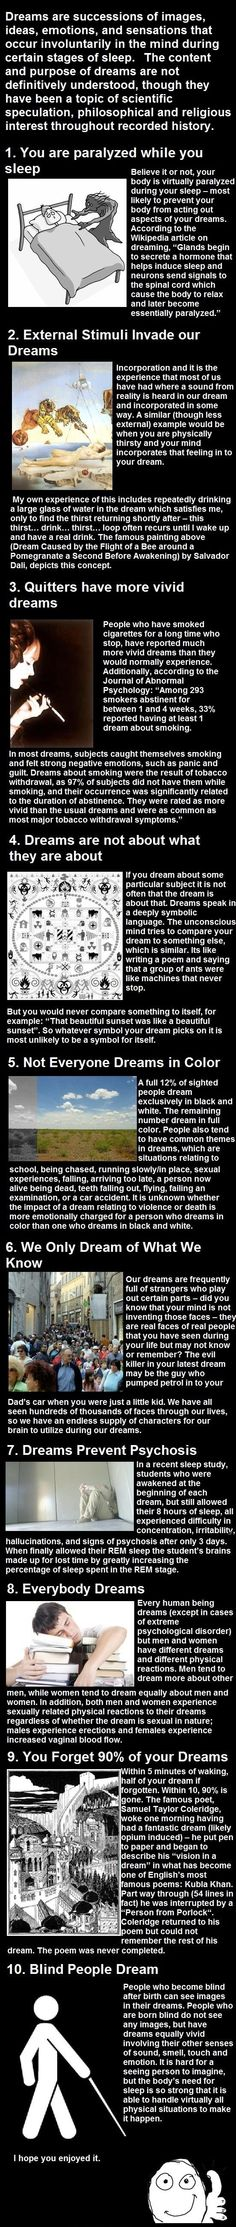 Top 10 Facts About Dreams